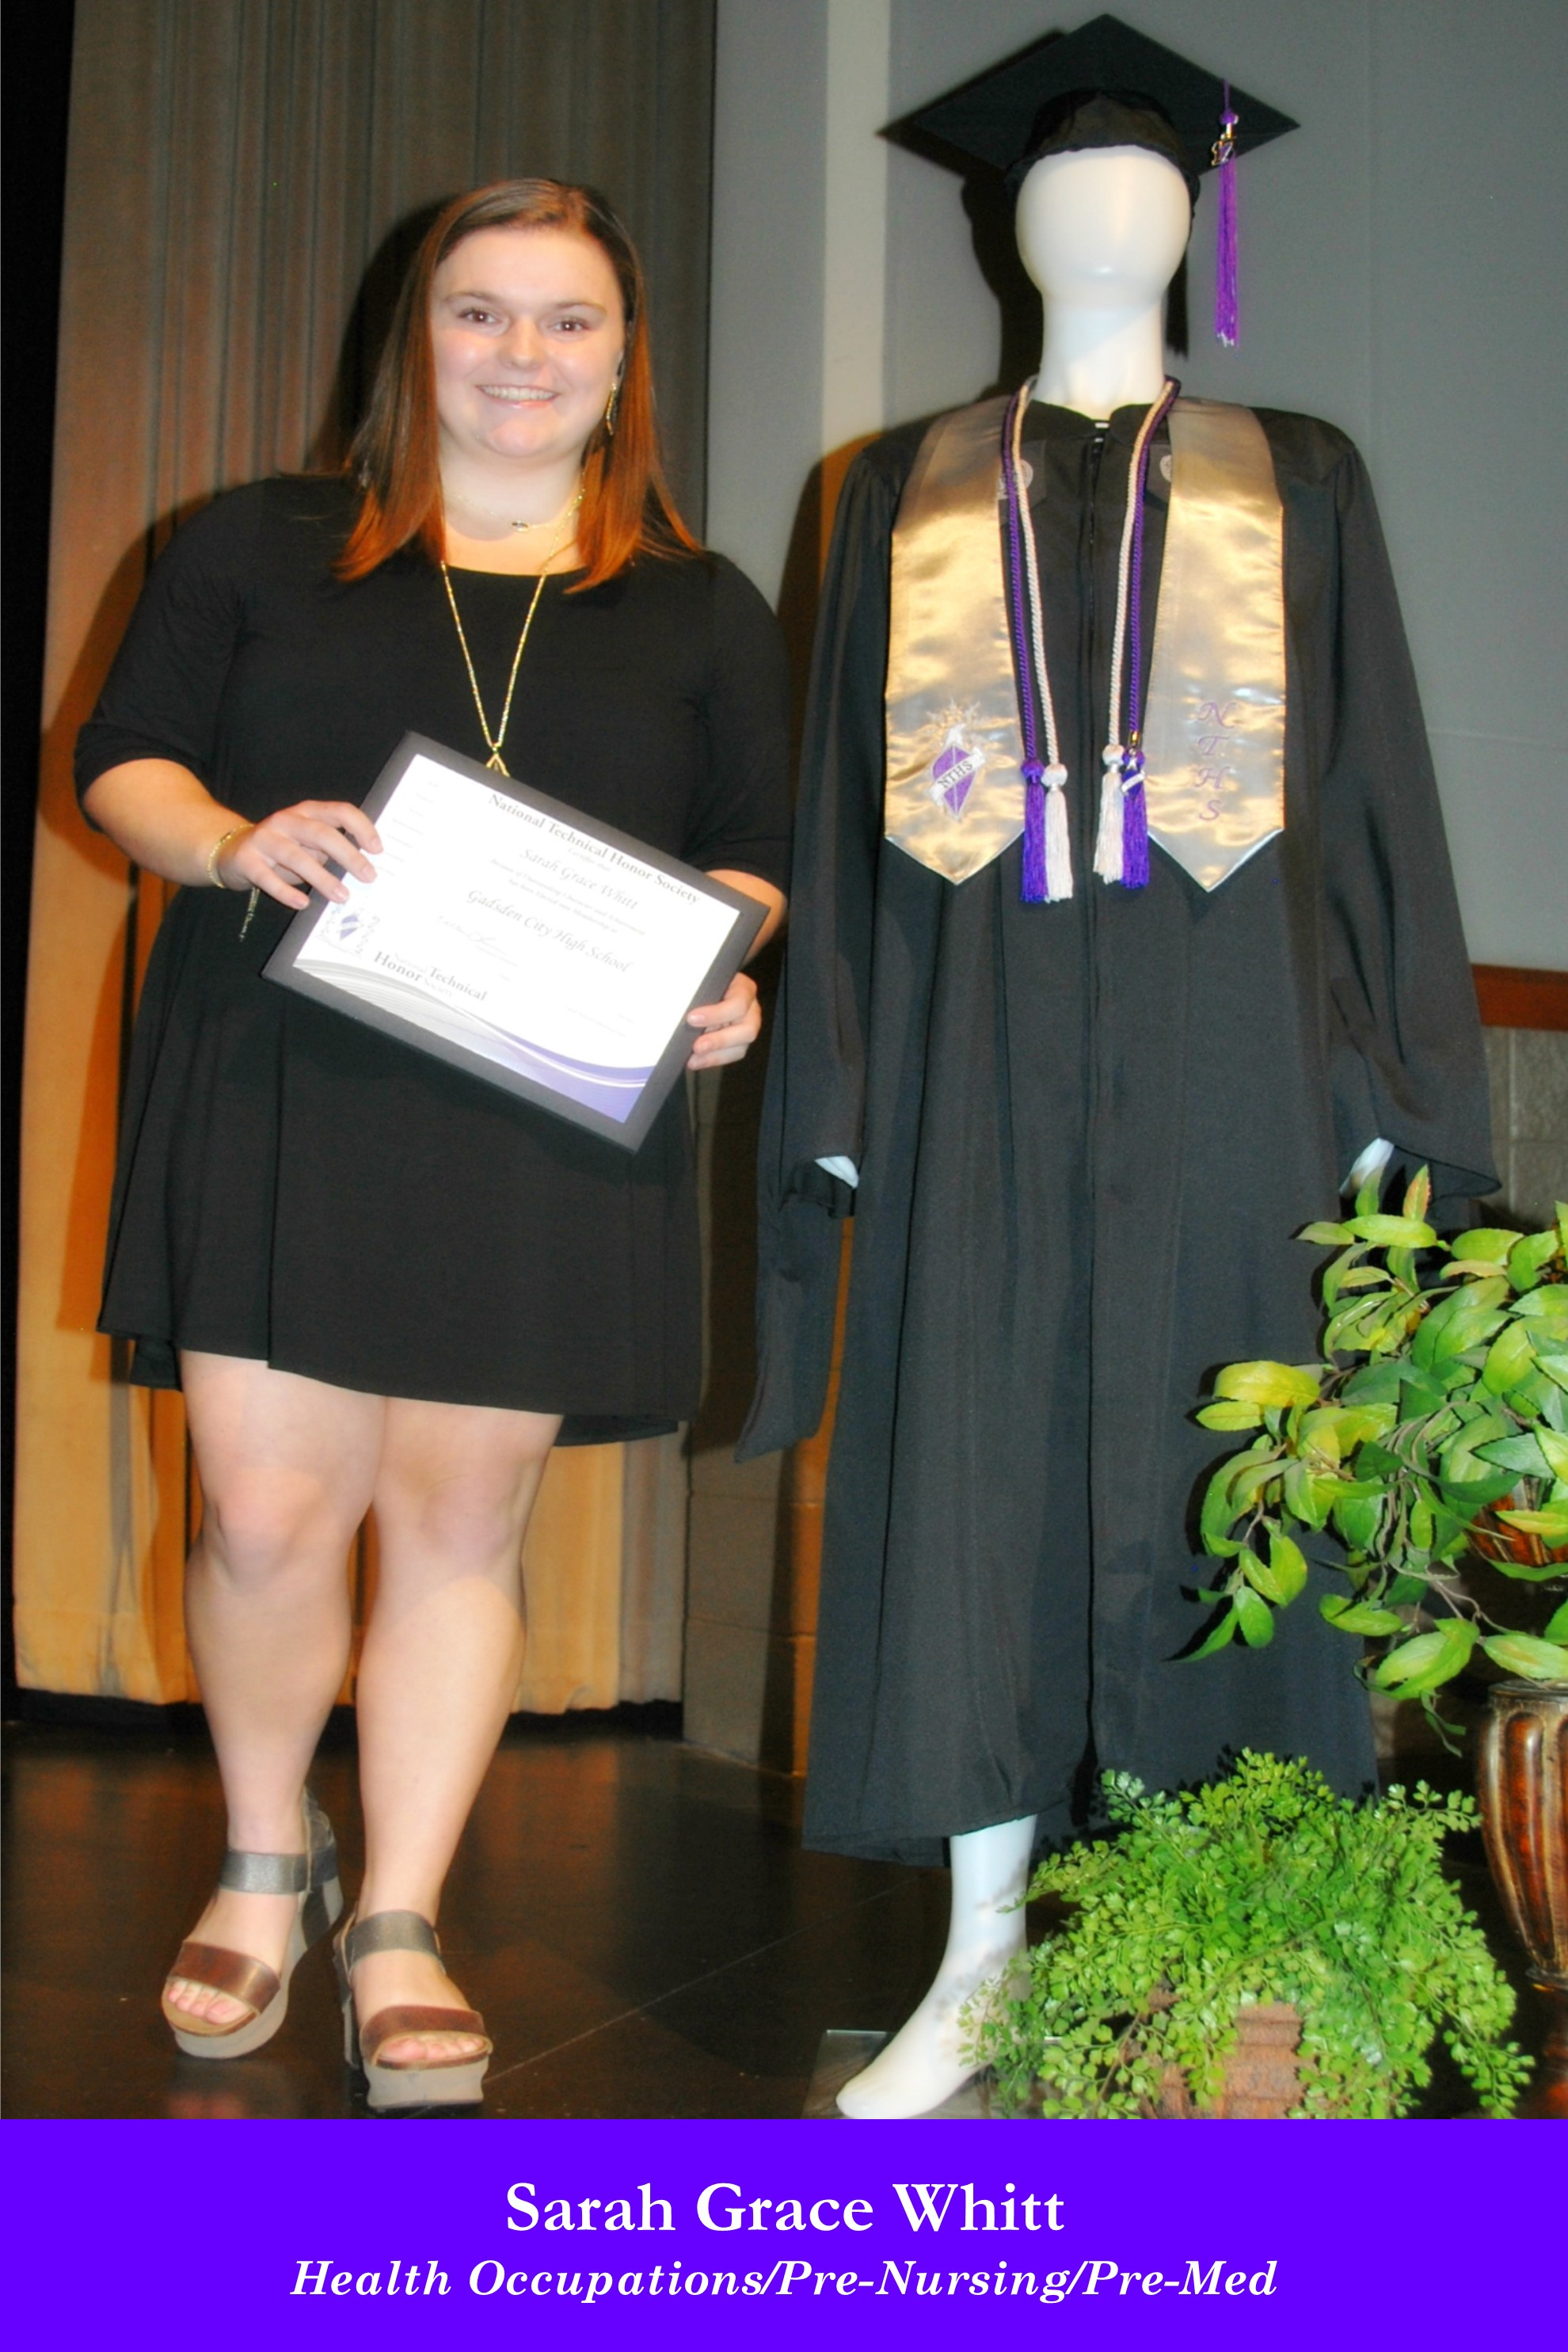 NTHS Induction Sarah Grace Whitt